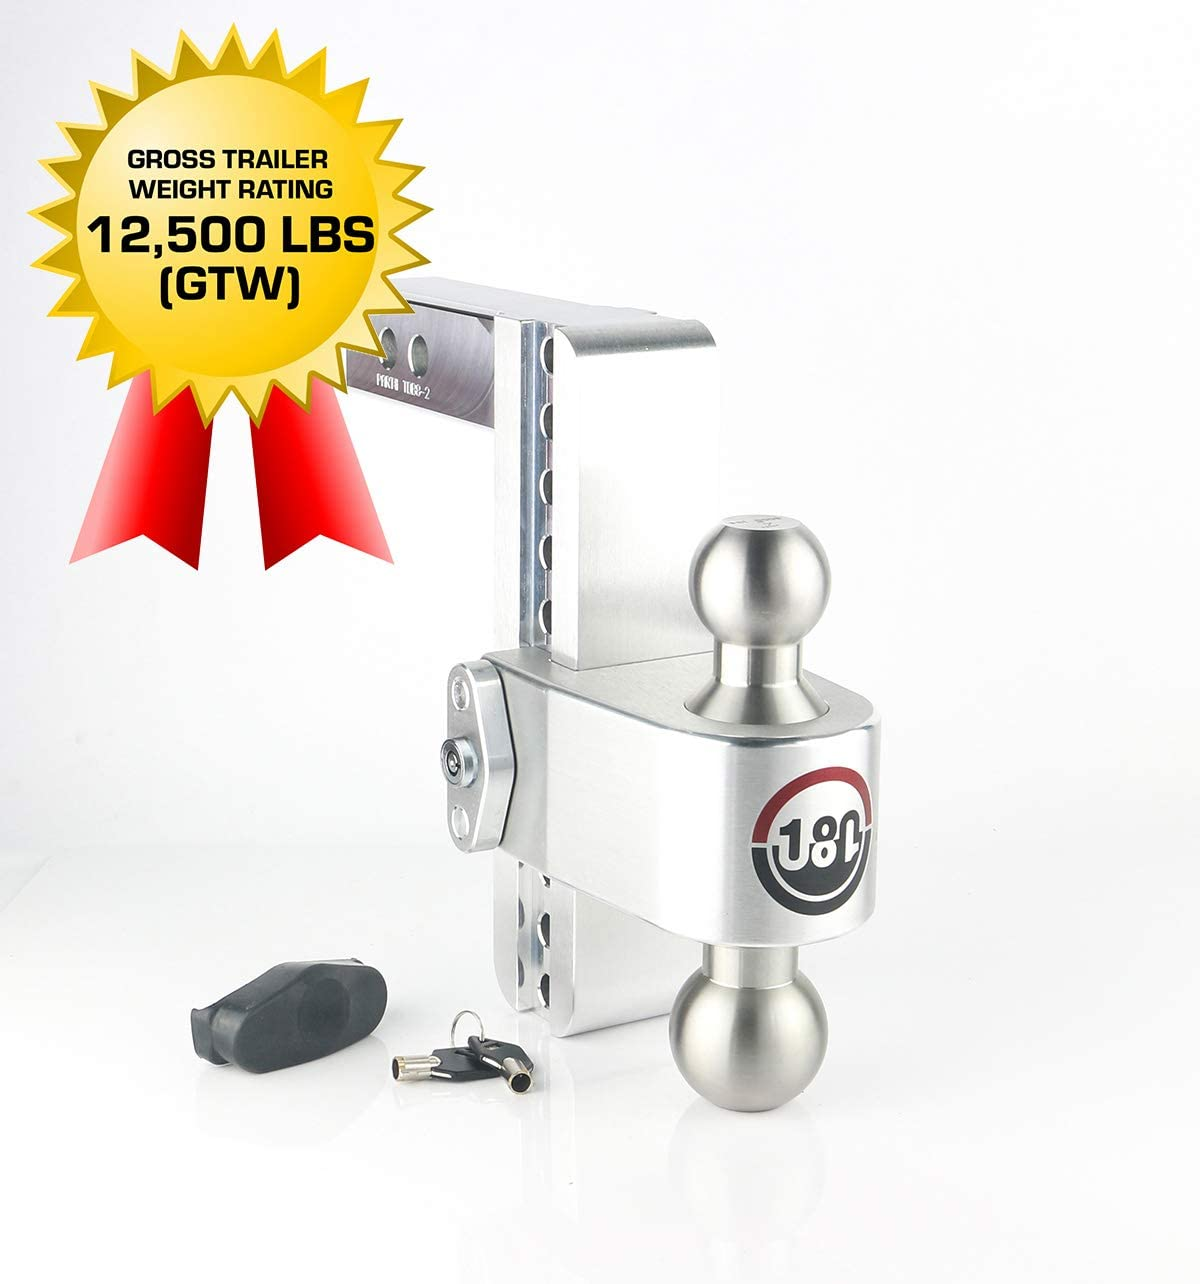 Stainless Steel Combo Ball Weigh Safe LTB8-2 2 /& 2-5//16 Adjustable Aluminum Trailer Hitch /& Ball Mount and a Double-pin Key Lock 8 Drop 180 Hitch w// 2 Shank//Shaft